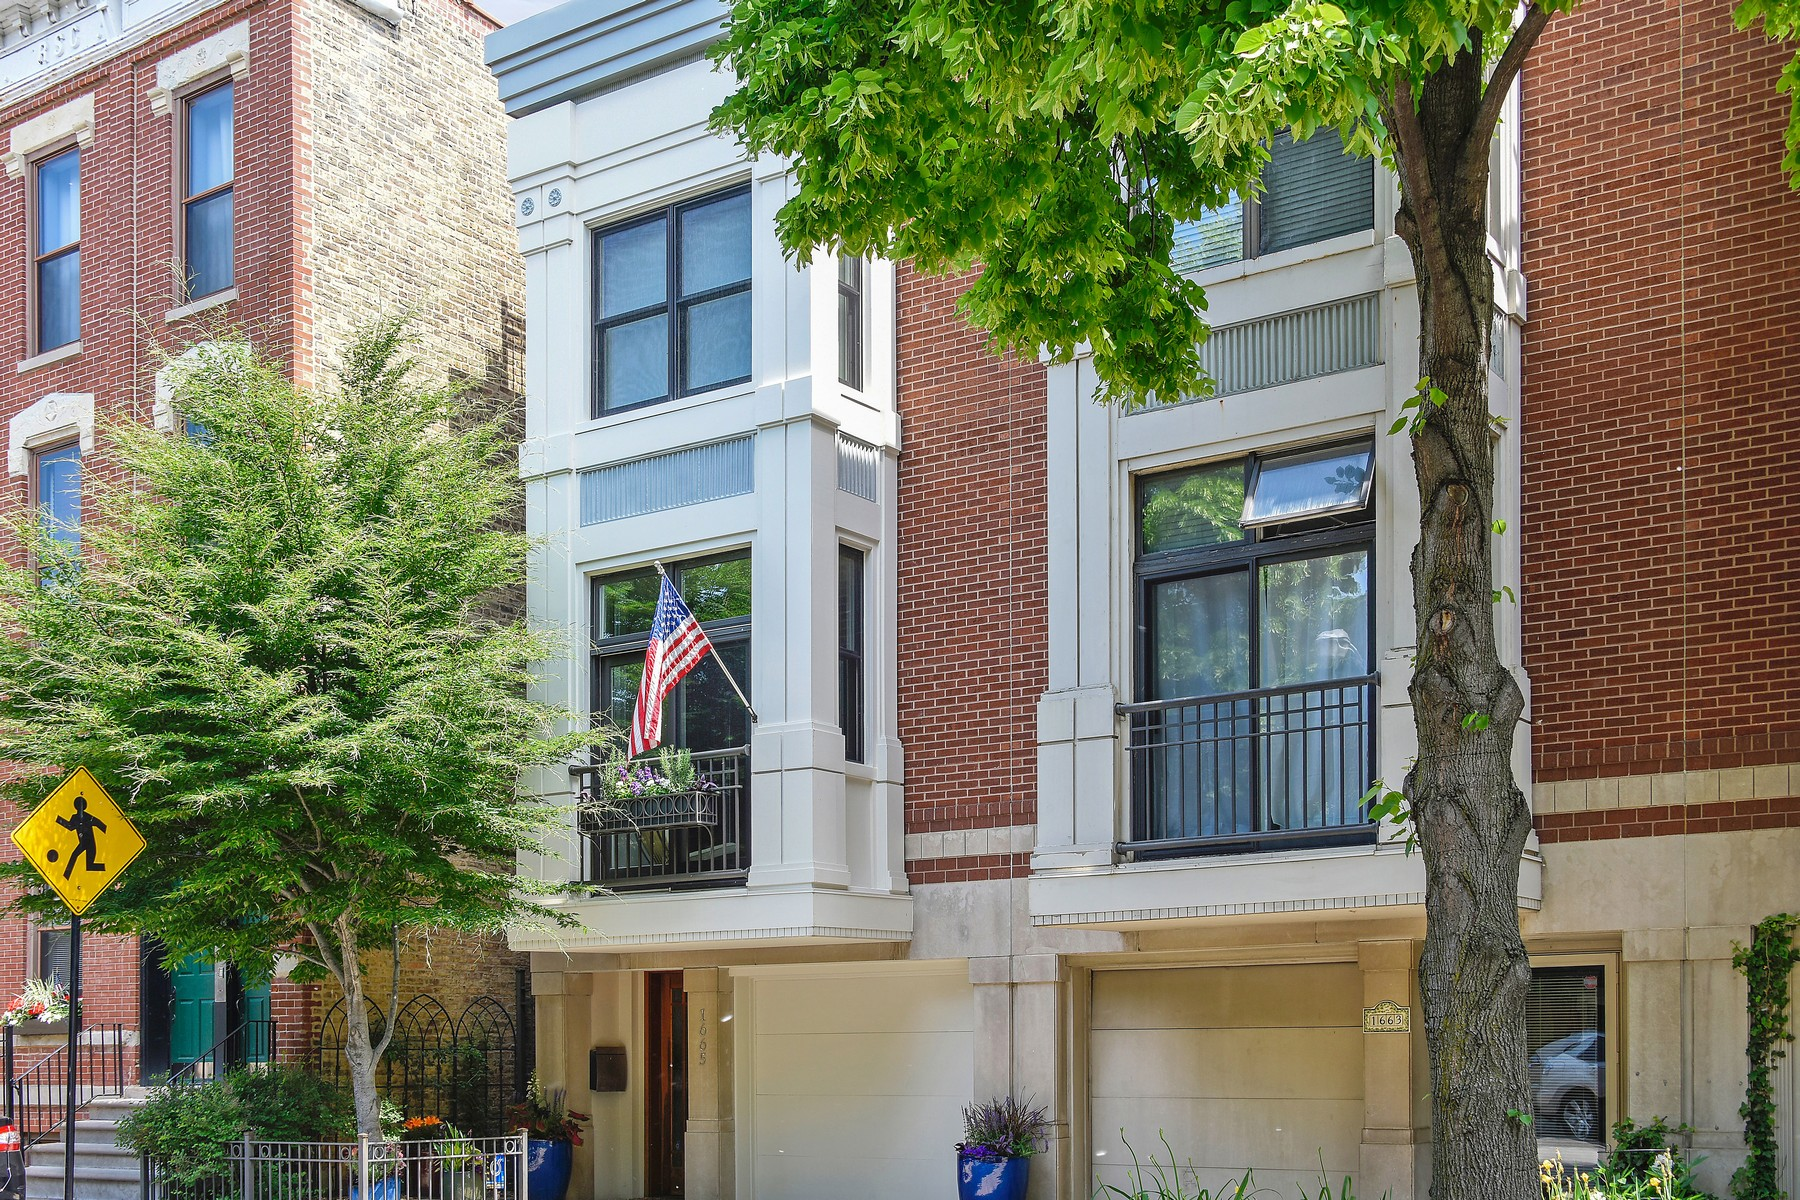 Casa Unifamiliar por un Venta en Exquisite and Exceptional Smart Home 1665 N Bissell Street Lincoln Park, Chicago, Illinois, 60614 Estados Unidos